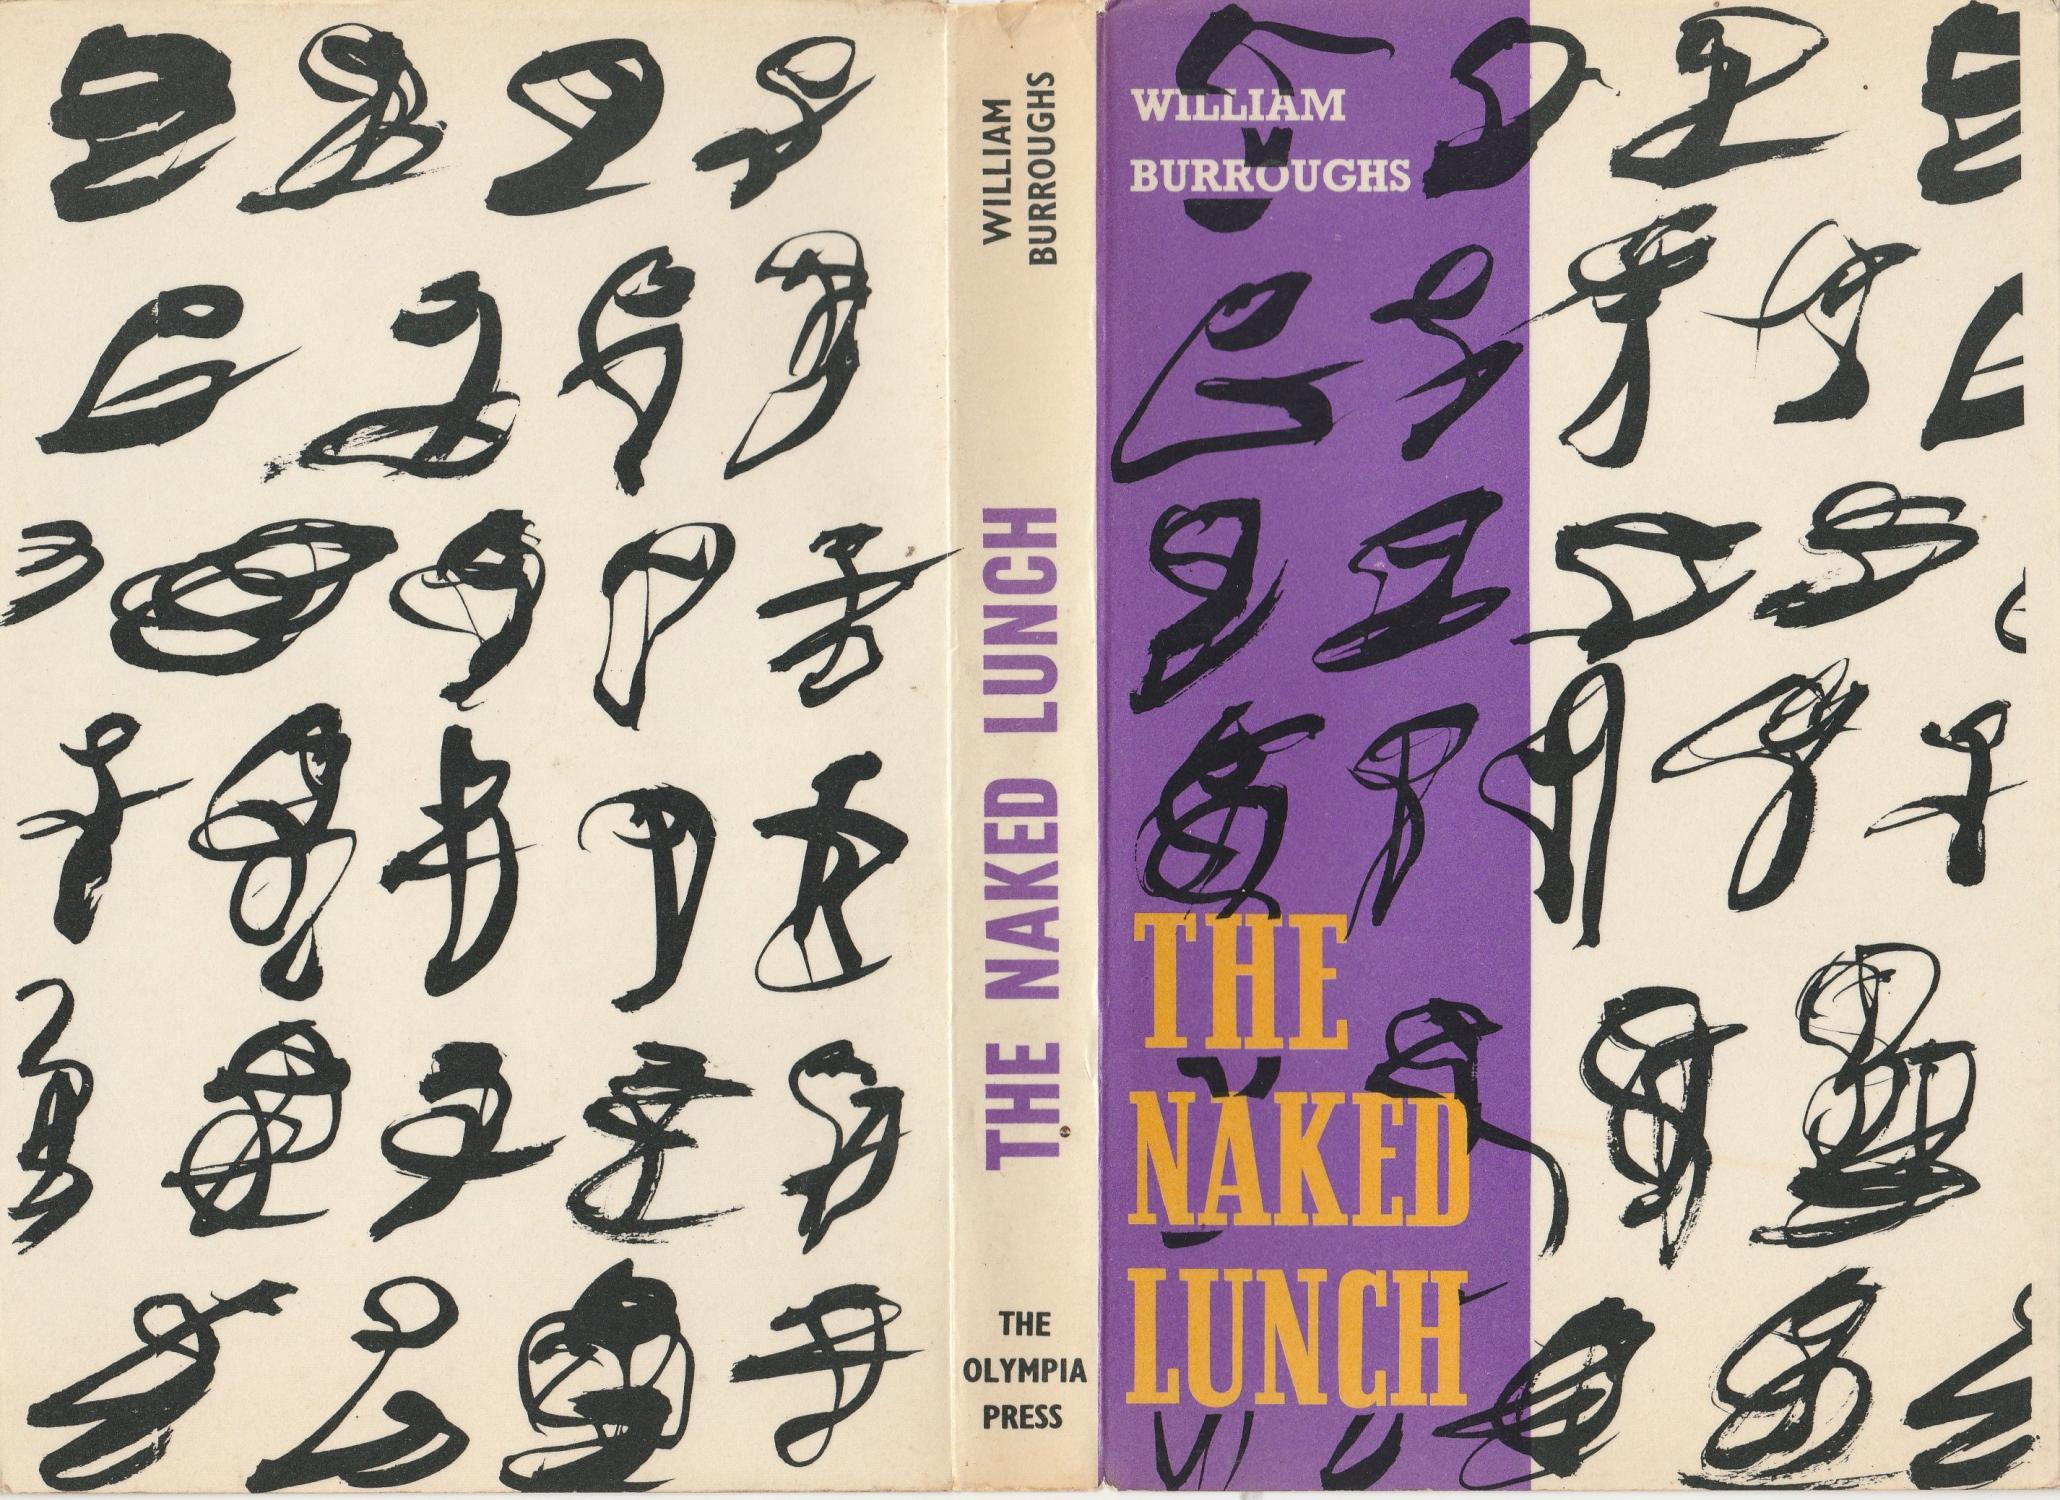 The Naked Lunch, prima edizione